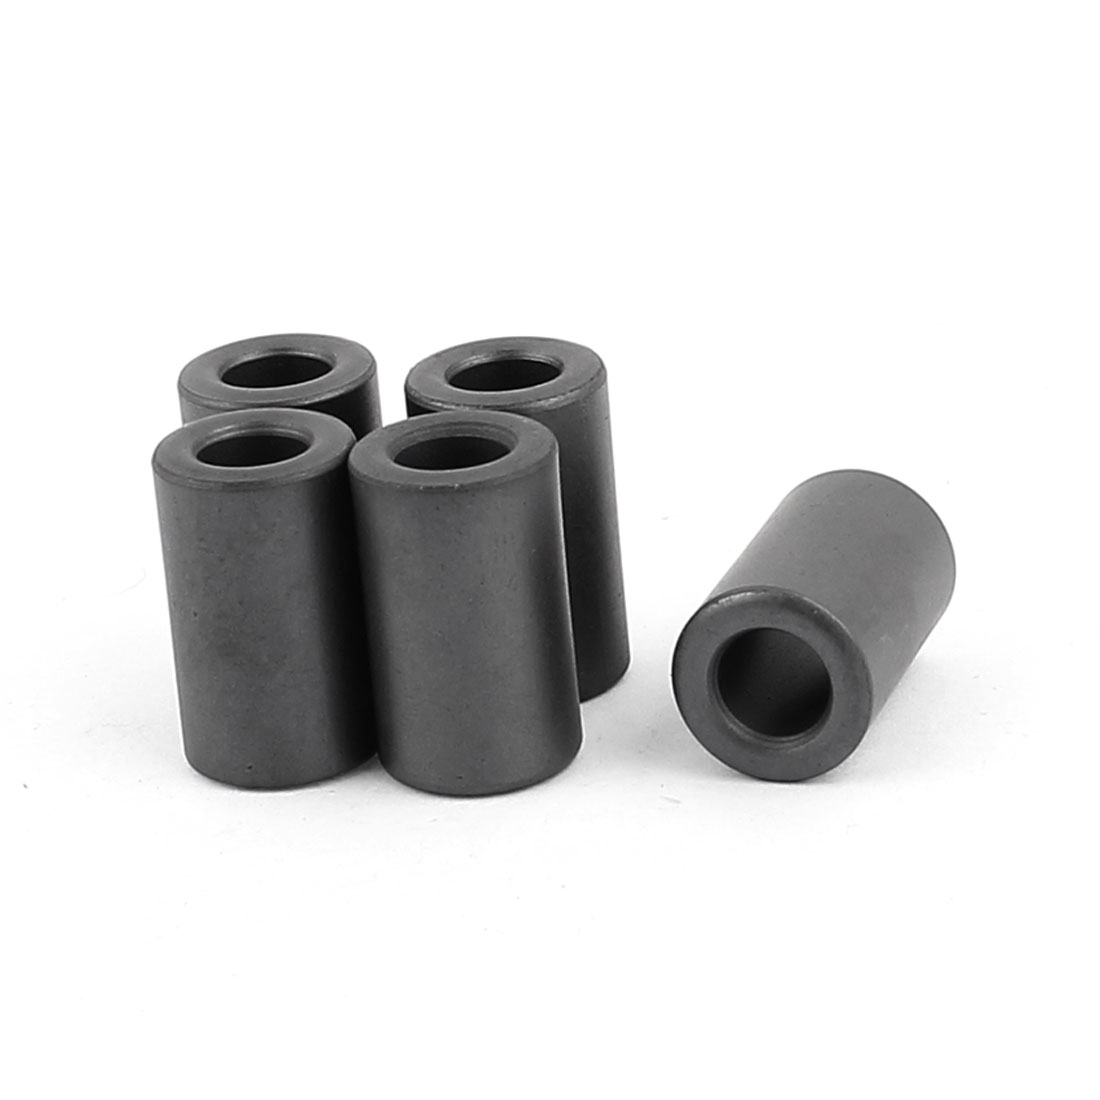 5Pcs M6 X 20 12Mm Ferrite Bead Toroid Cores For Filters Coils